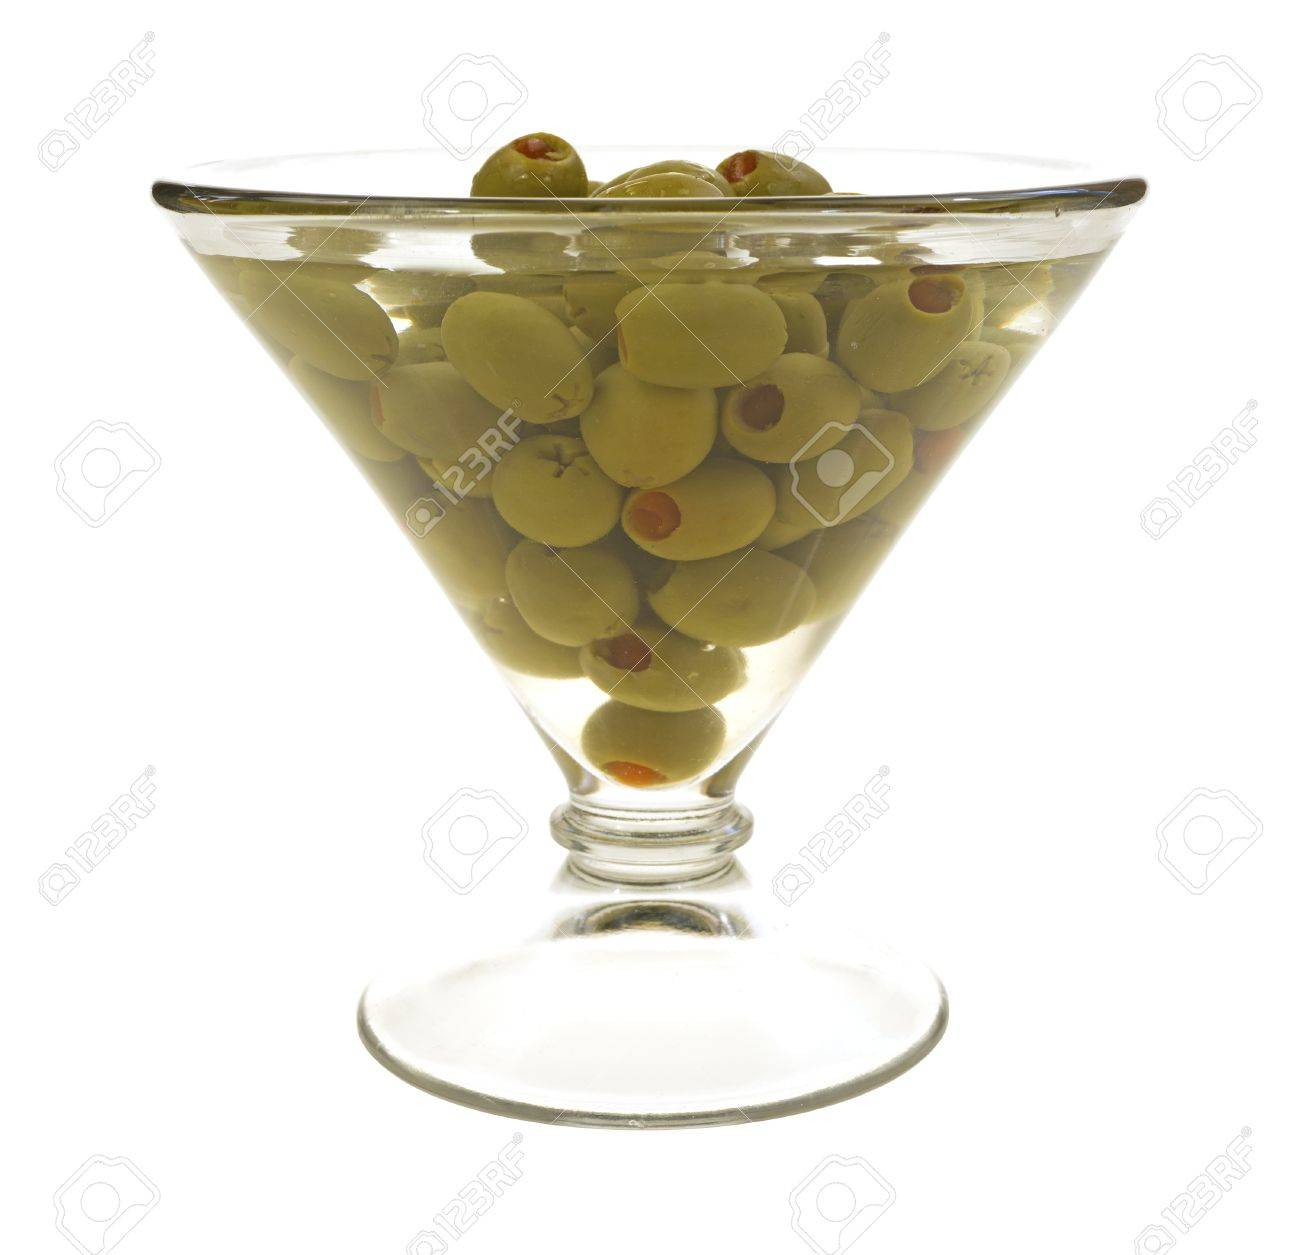 An Oversized Martini Glass Filled With Stuffed Olives And Liquid